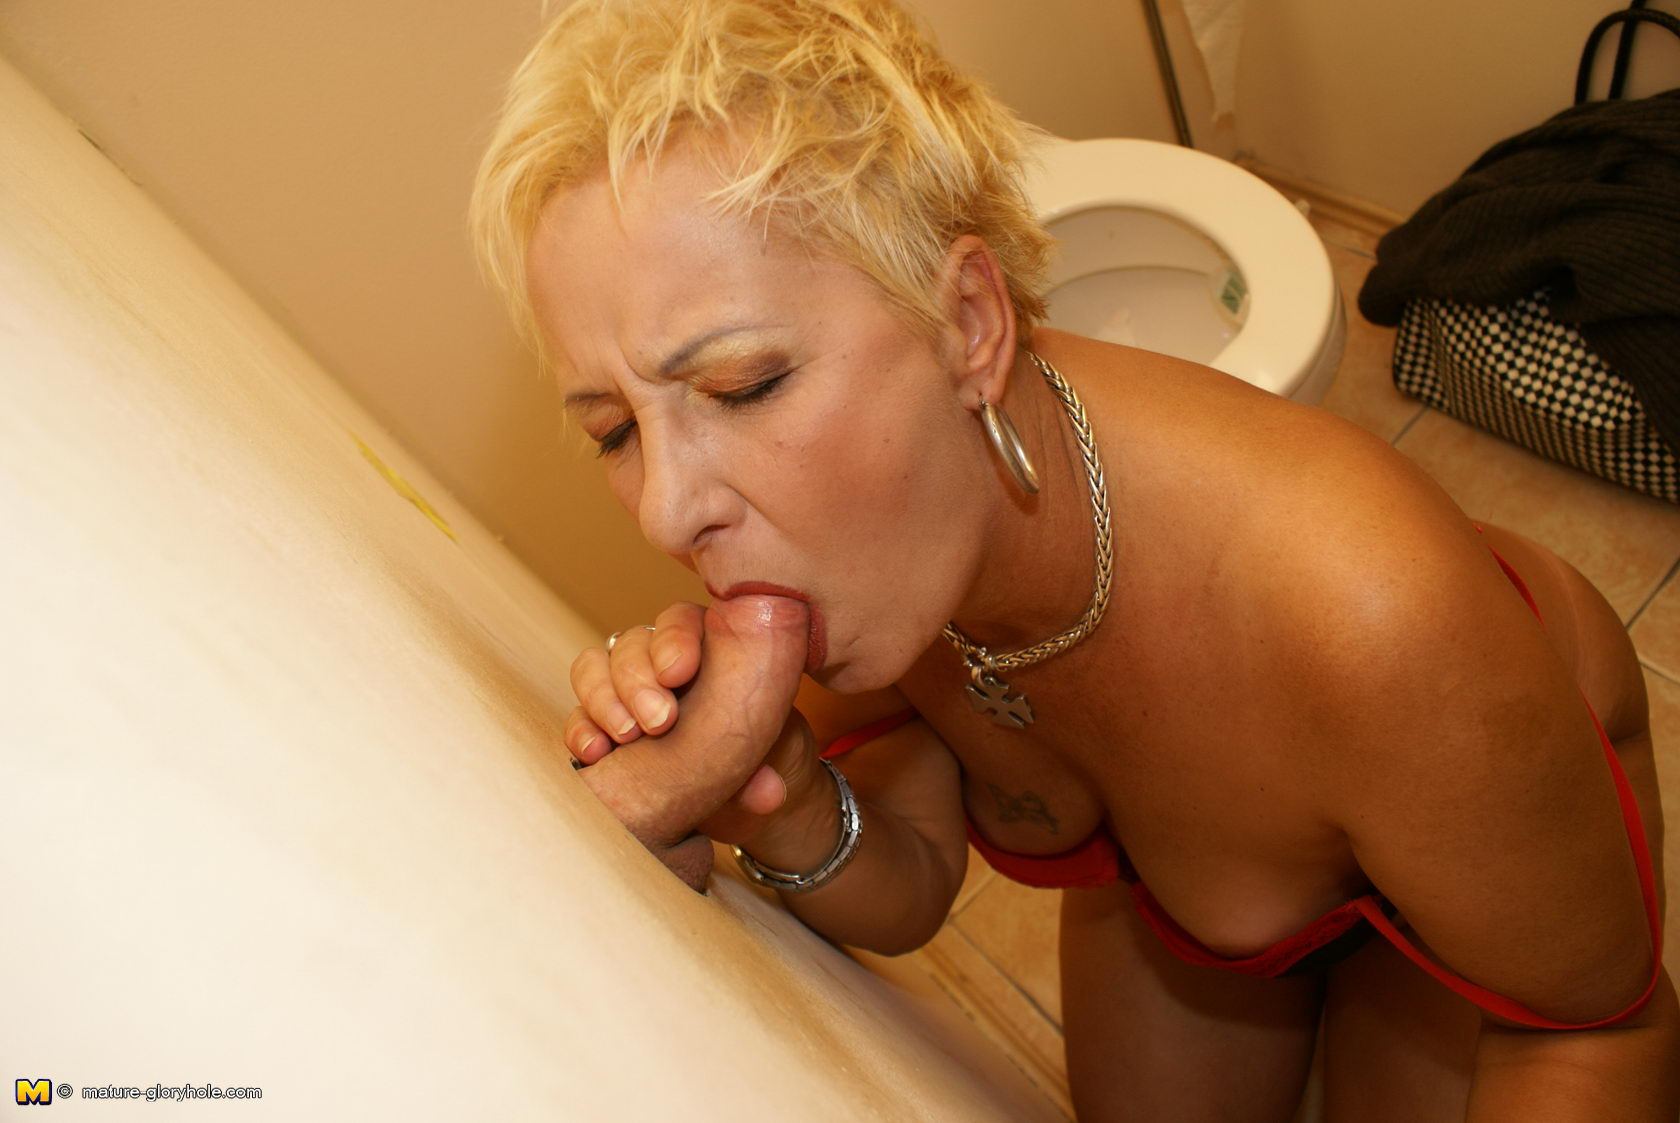 Grandma at gloryhole